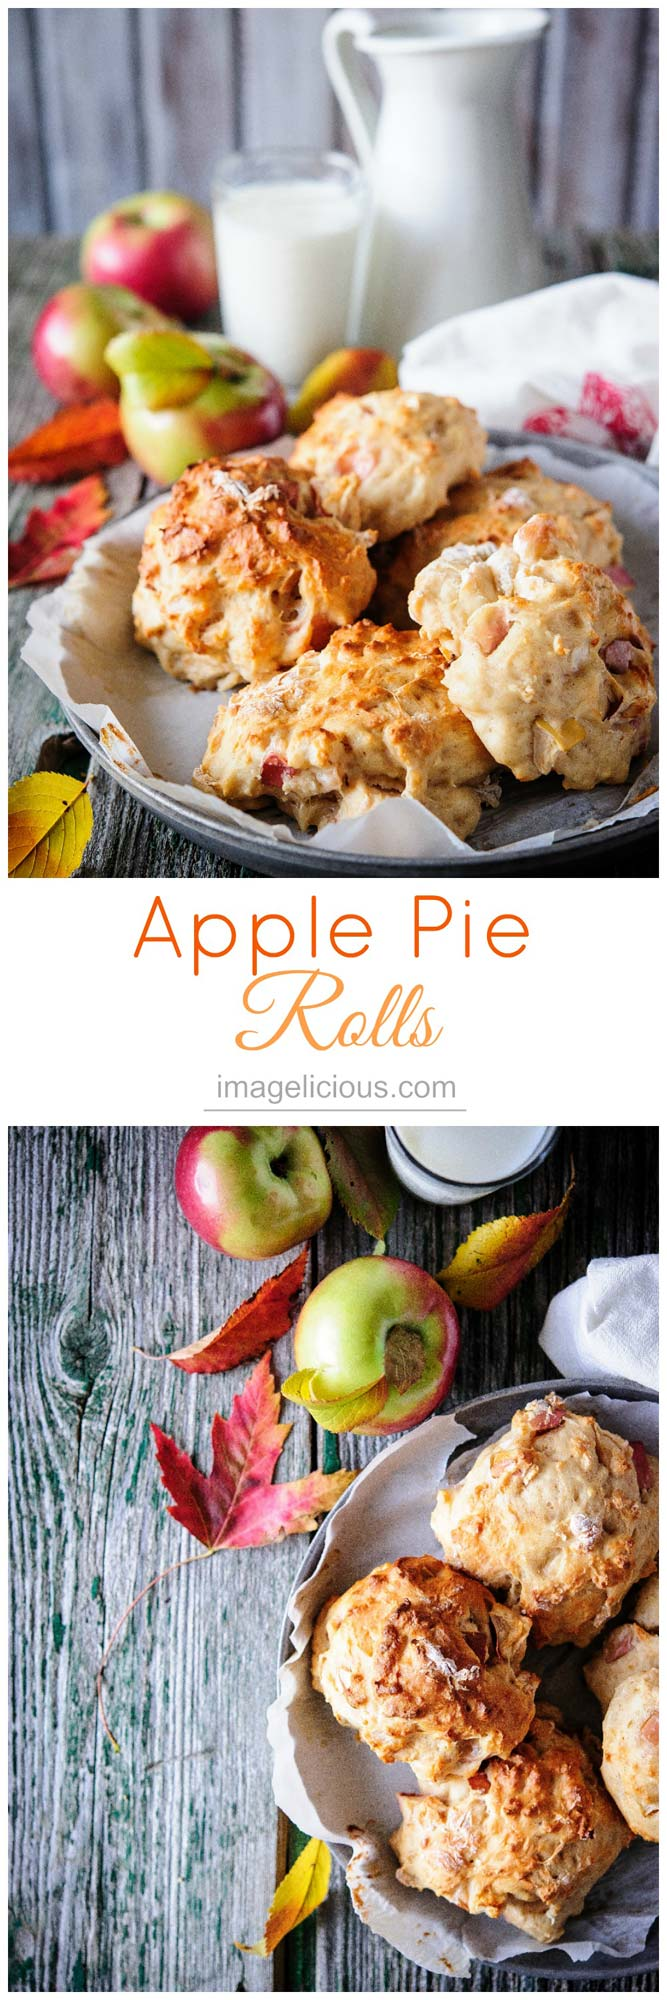 Apple Pie Rolls taste like apple pie but without all the effort | Imagelicious